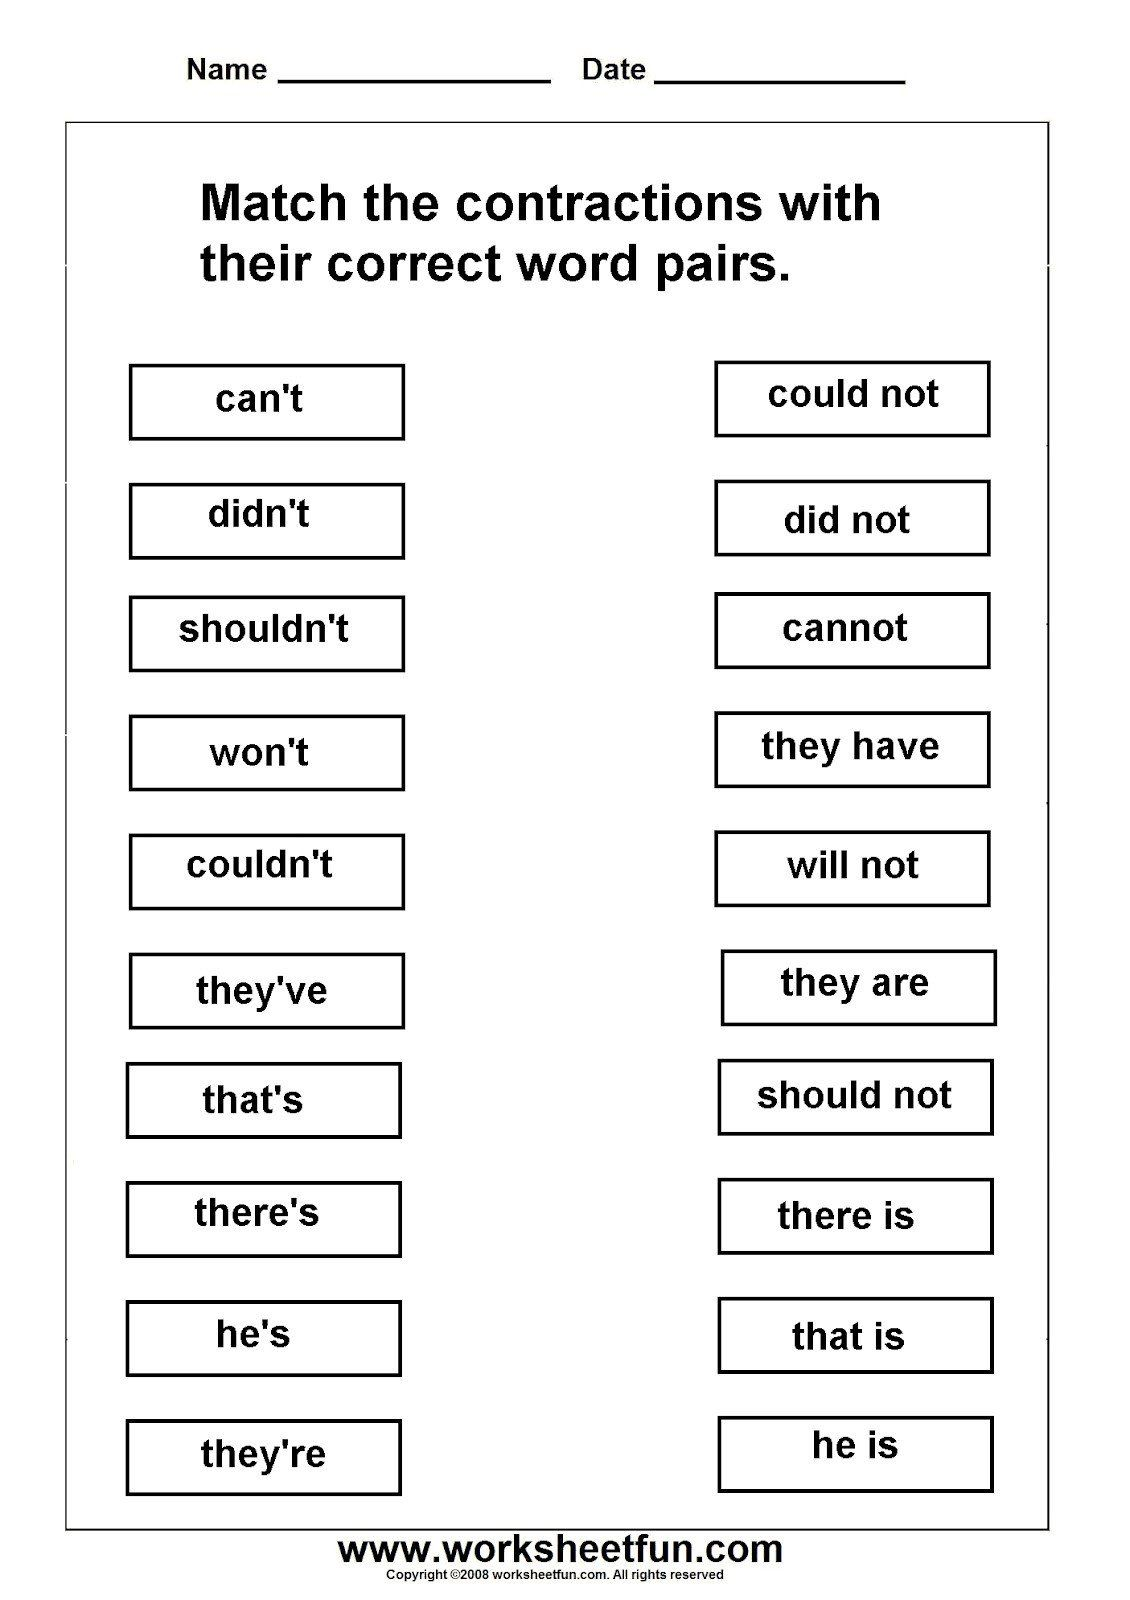 small resolution of Contractions Worksheets Free 5th Grade   Printable Worksheets and  Activities for Teachers